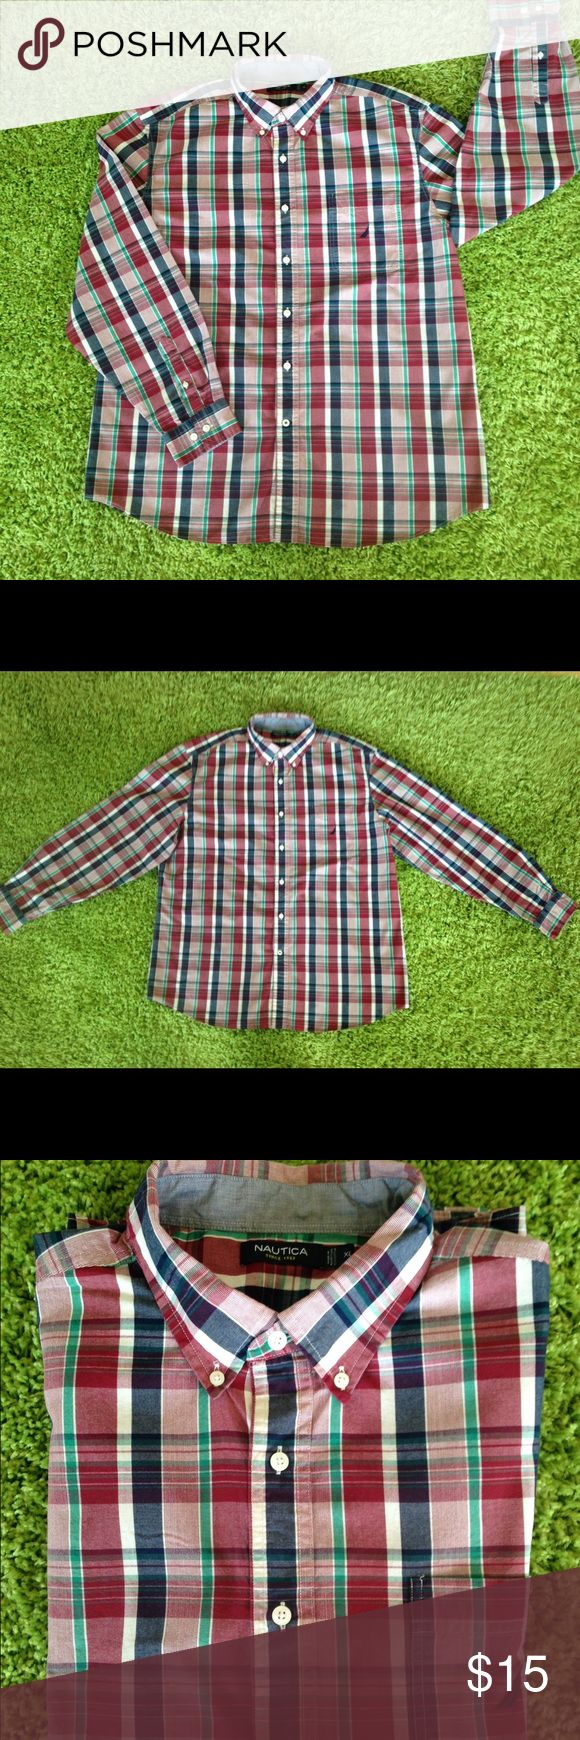 MENS XL NAUTICA BUTTON DOWN LONG SLEEVE SHIRT. EUC MENS NAUTICA PLAID LONG SLEEVE BUTTON DOWN SHIRT. XL IN SIZE AND COMES FROM A NON SMOKING PER FREE HOME. Nautica Shirts Casual Button Down Shirts